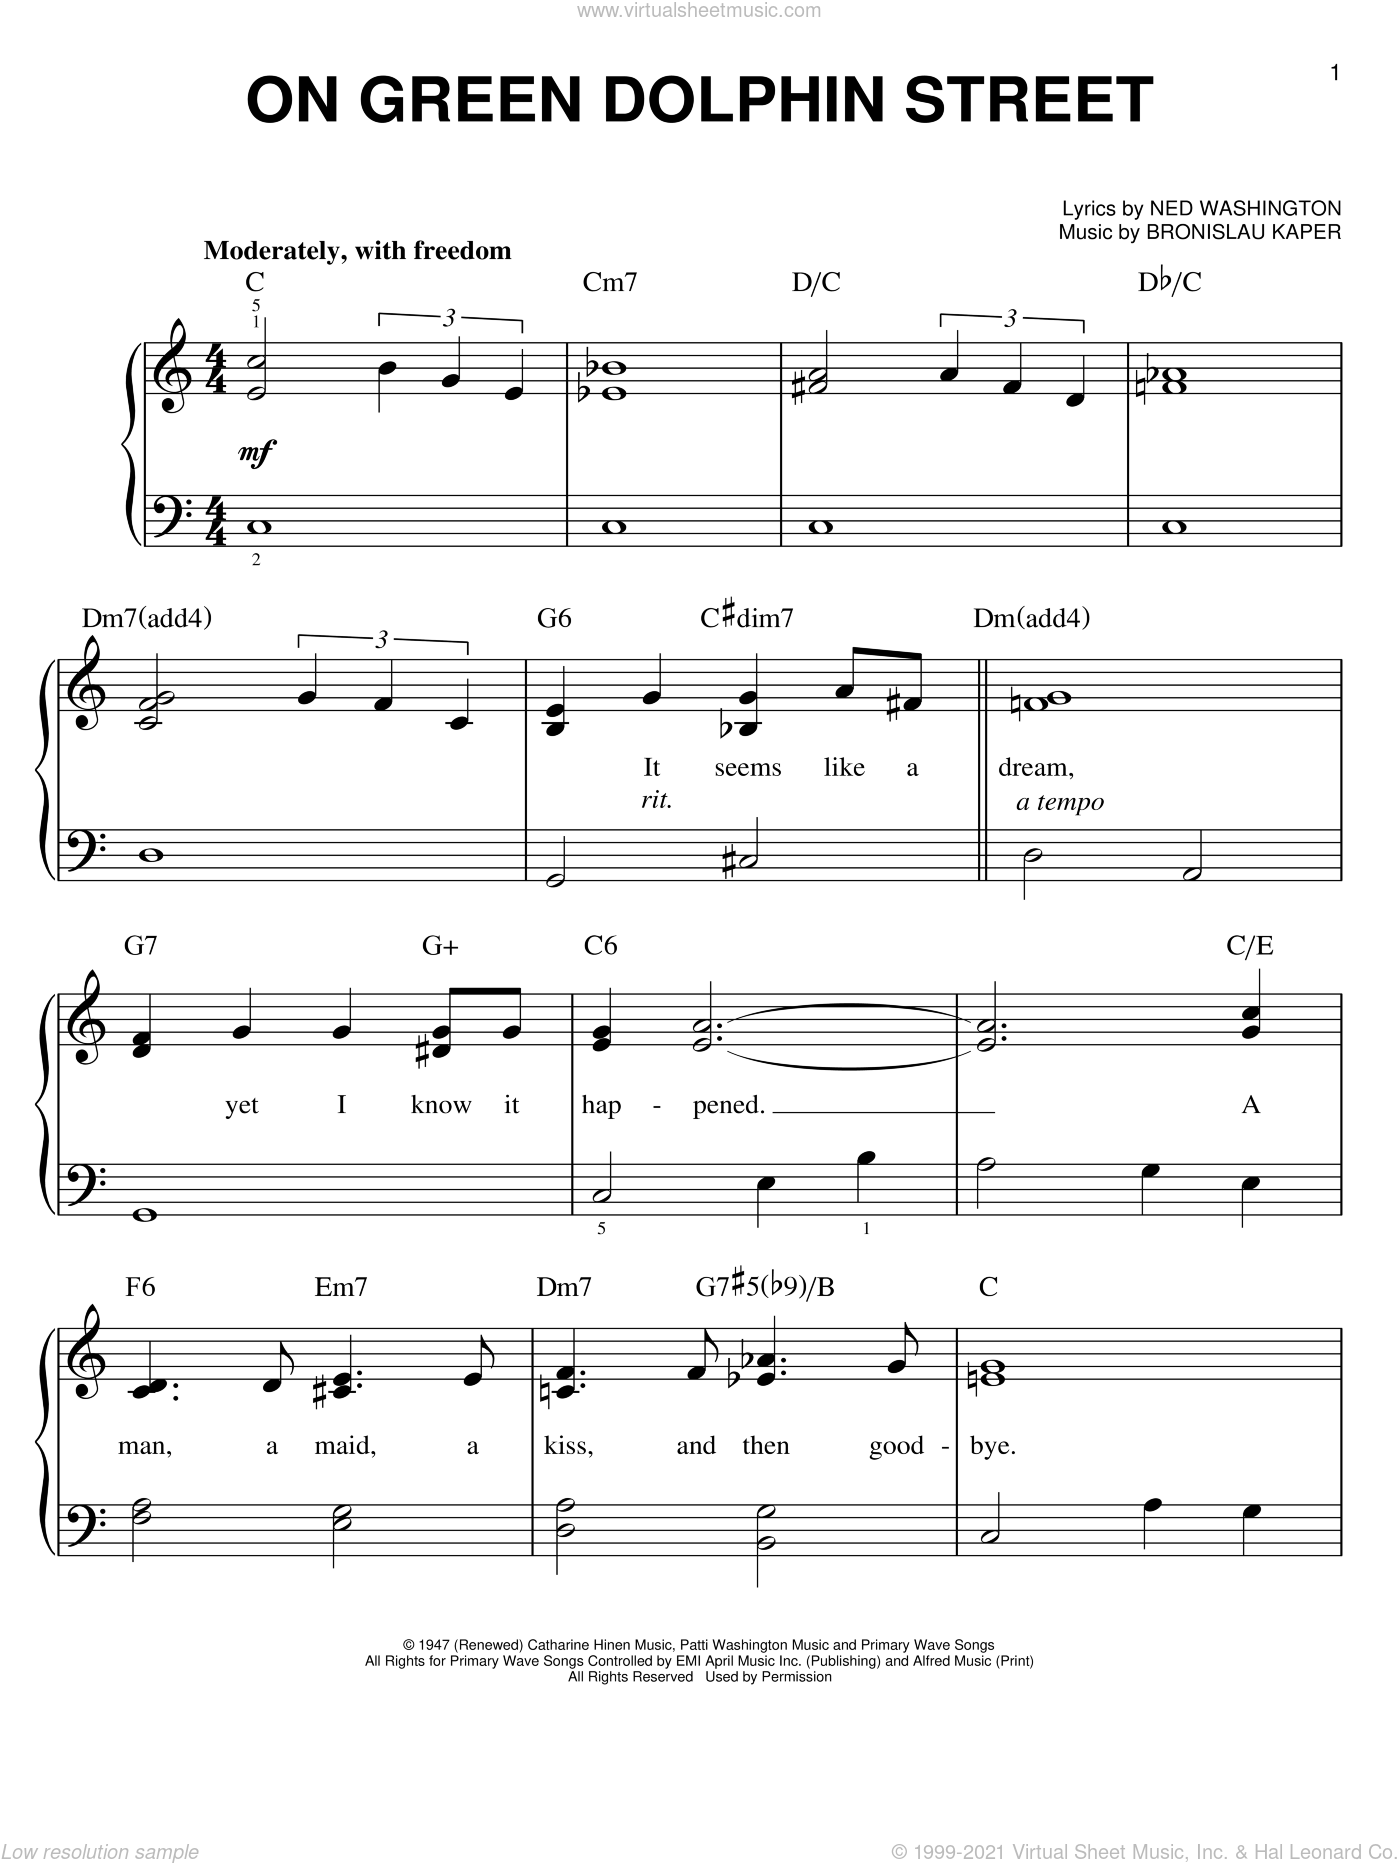 On Green Dolphin Street sheet music for piano solo by Bronislau Kaper and Ned Washington. Score Image Preview.